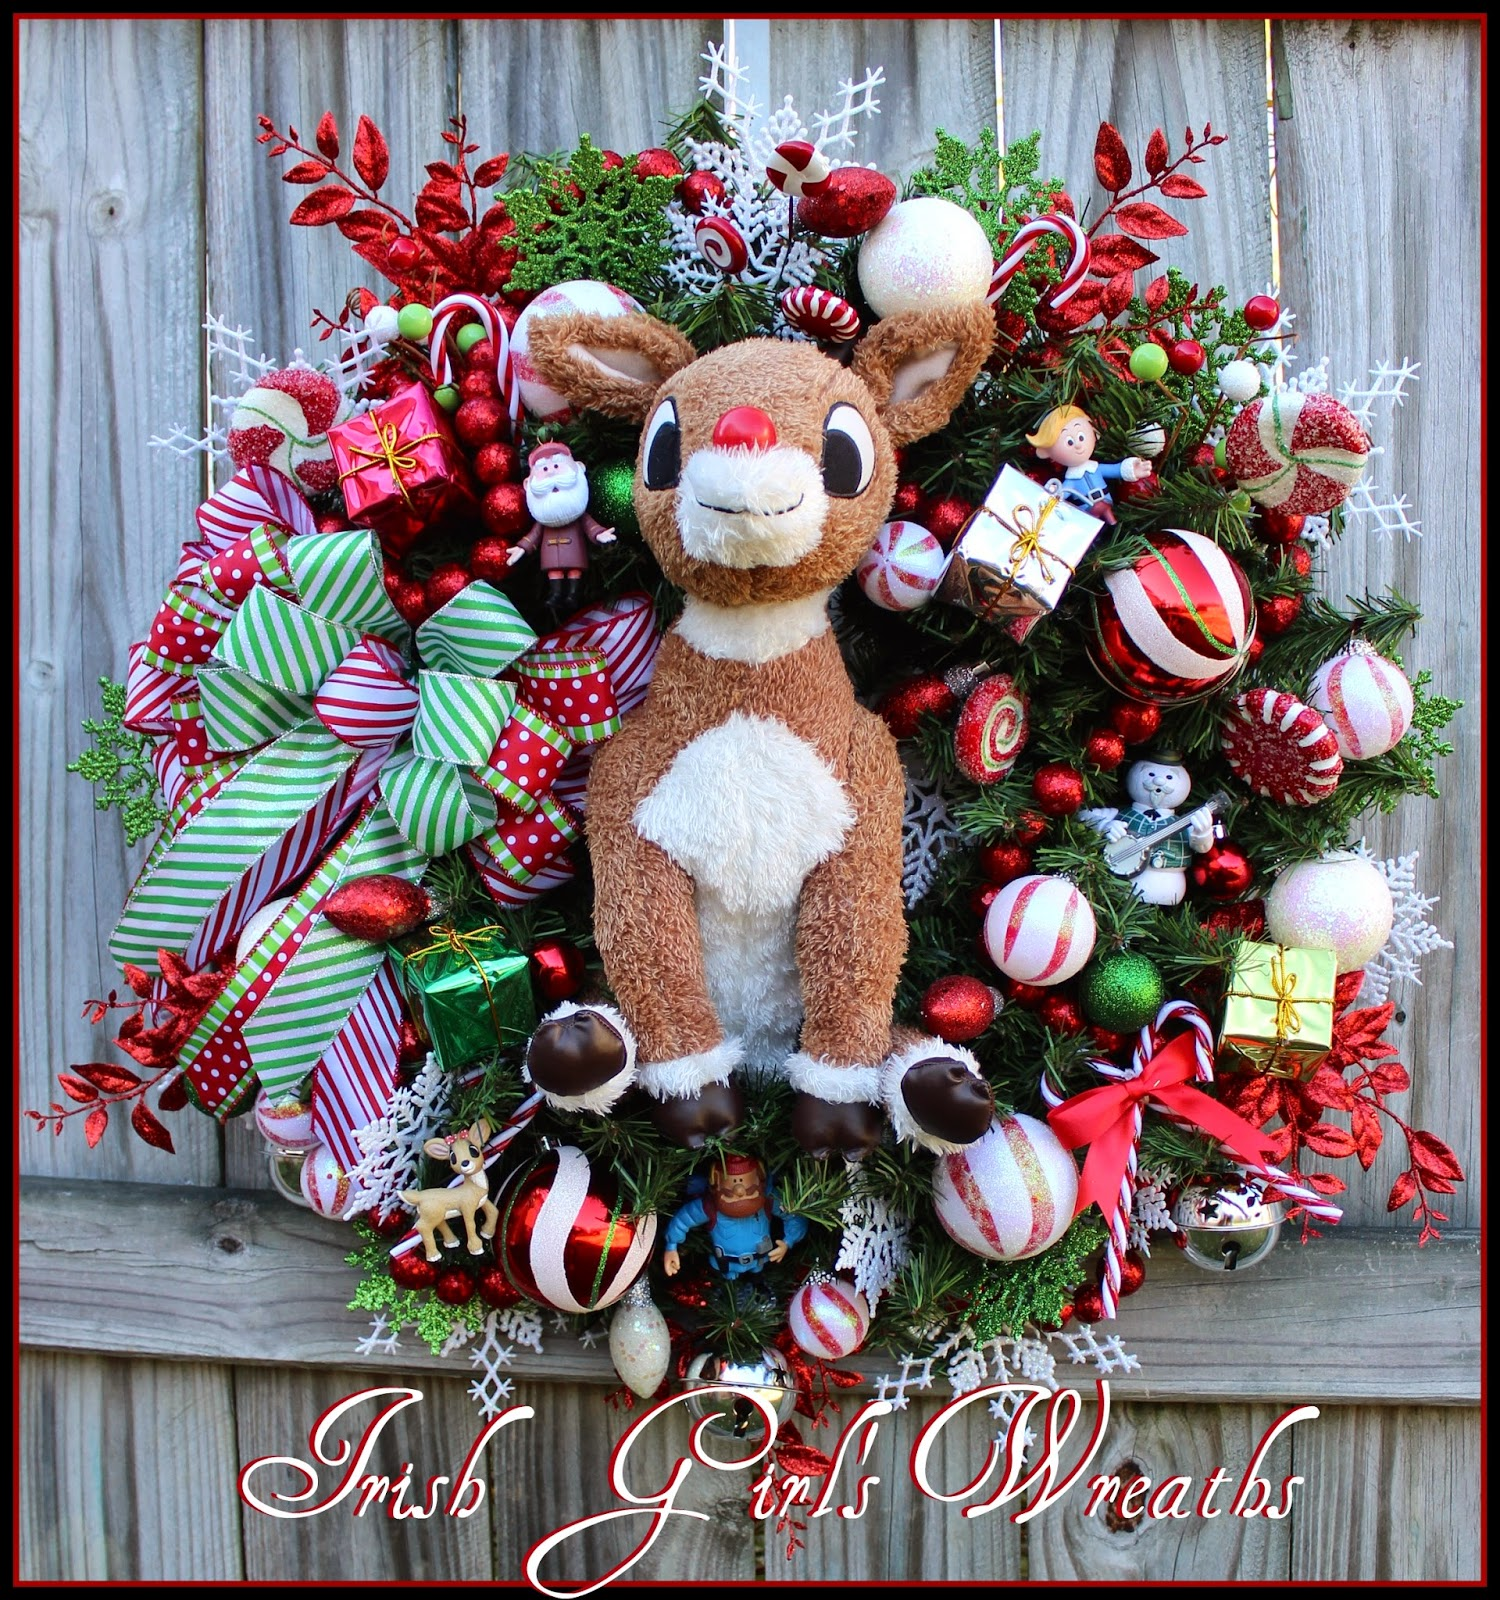 Custom Rudolph the Red Nosed Reindeer Wreath